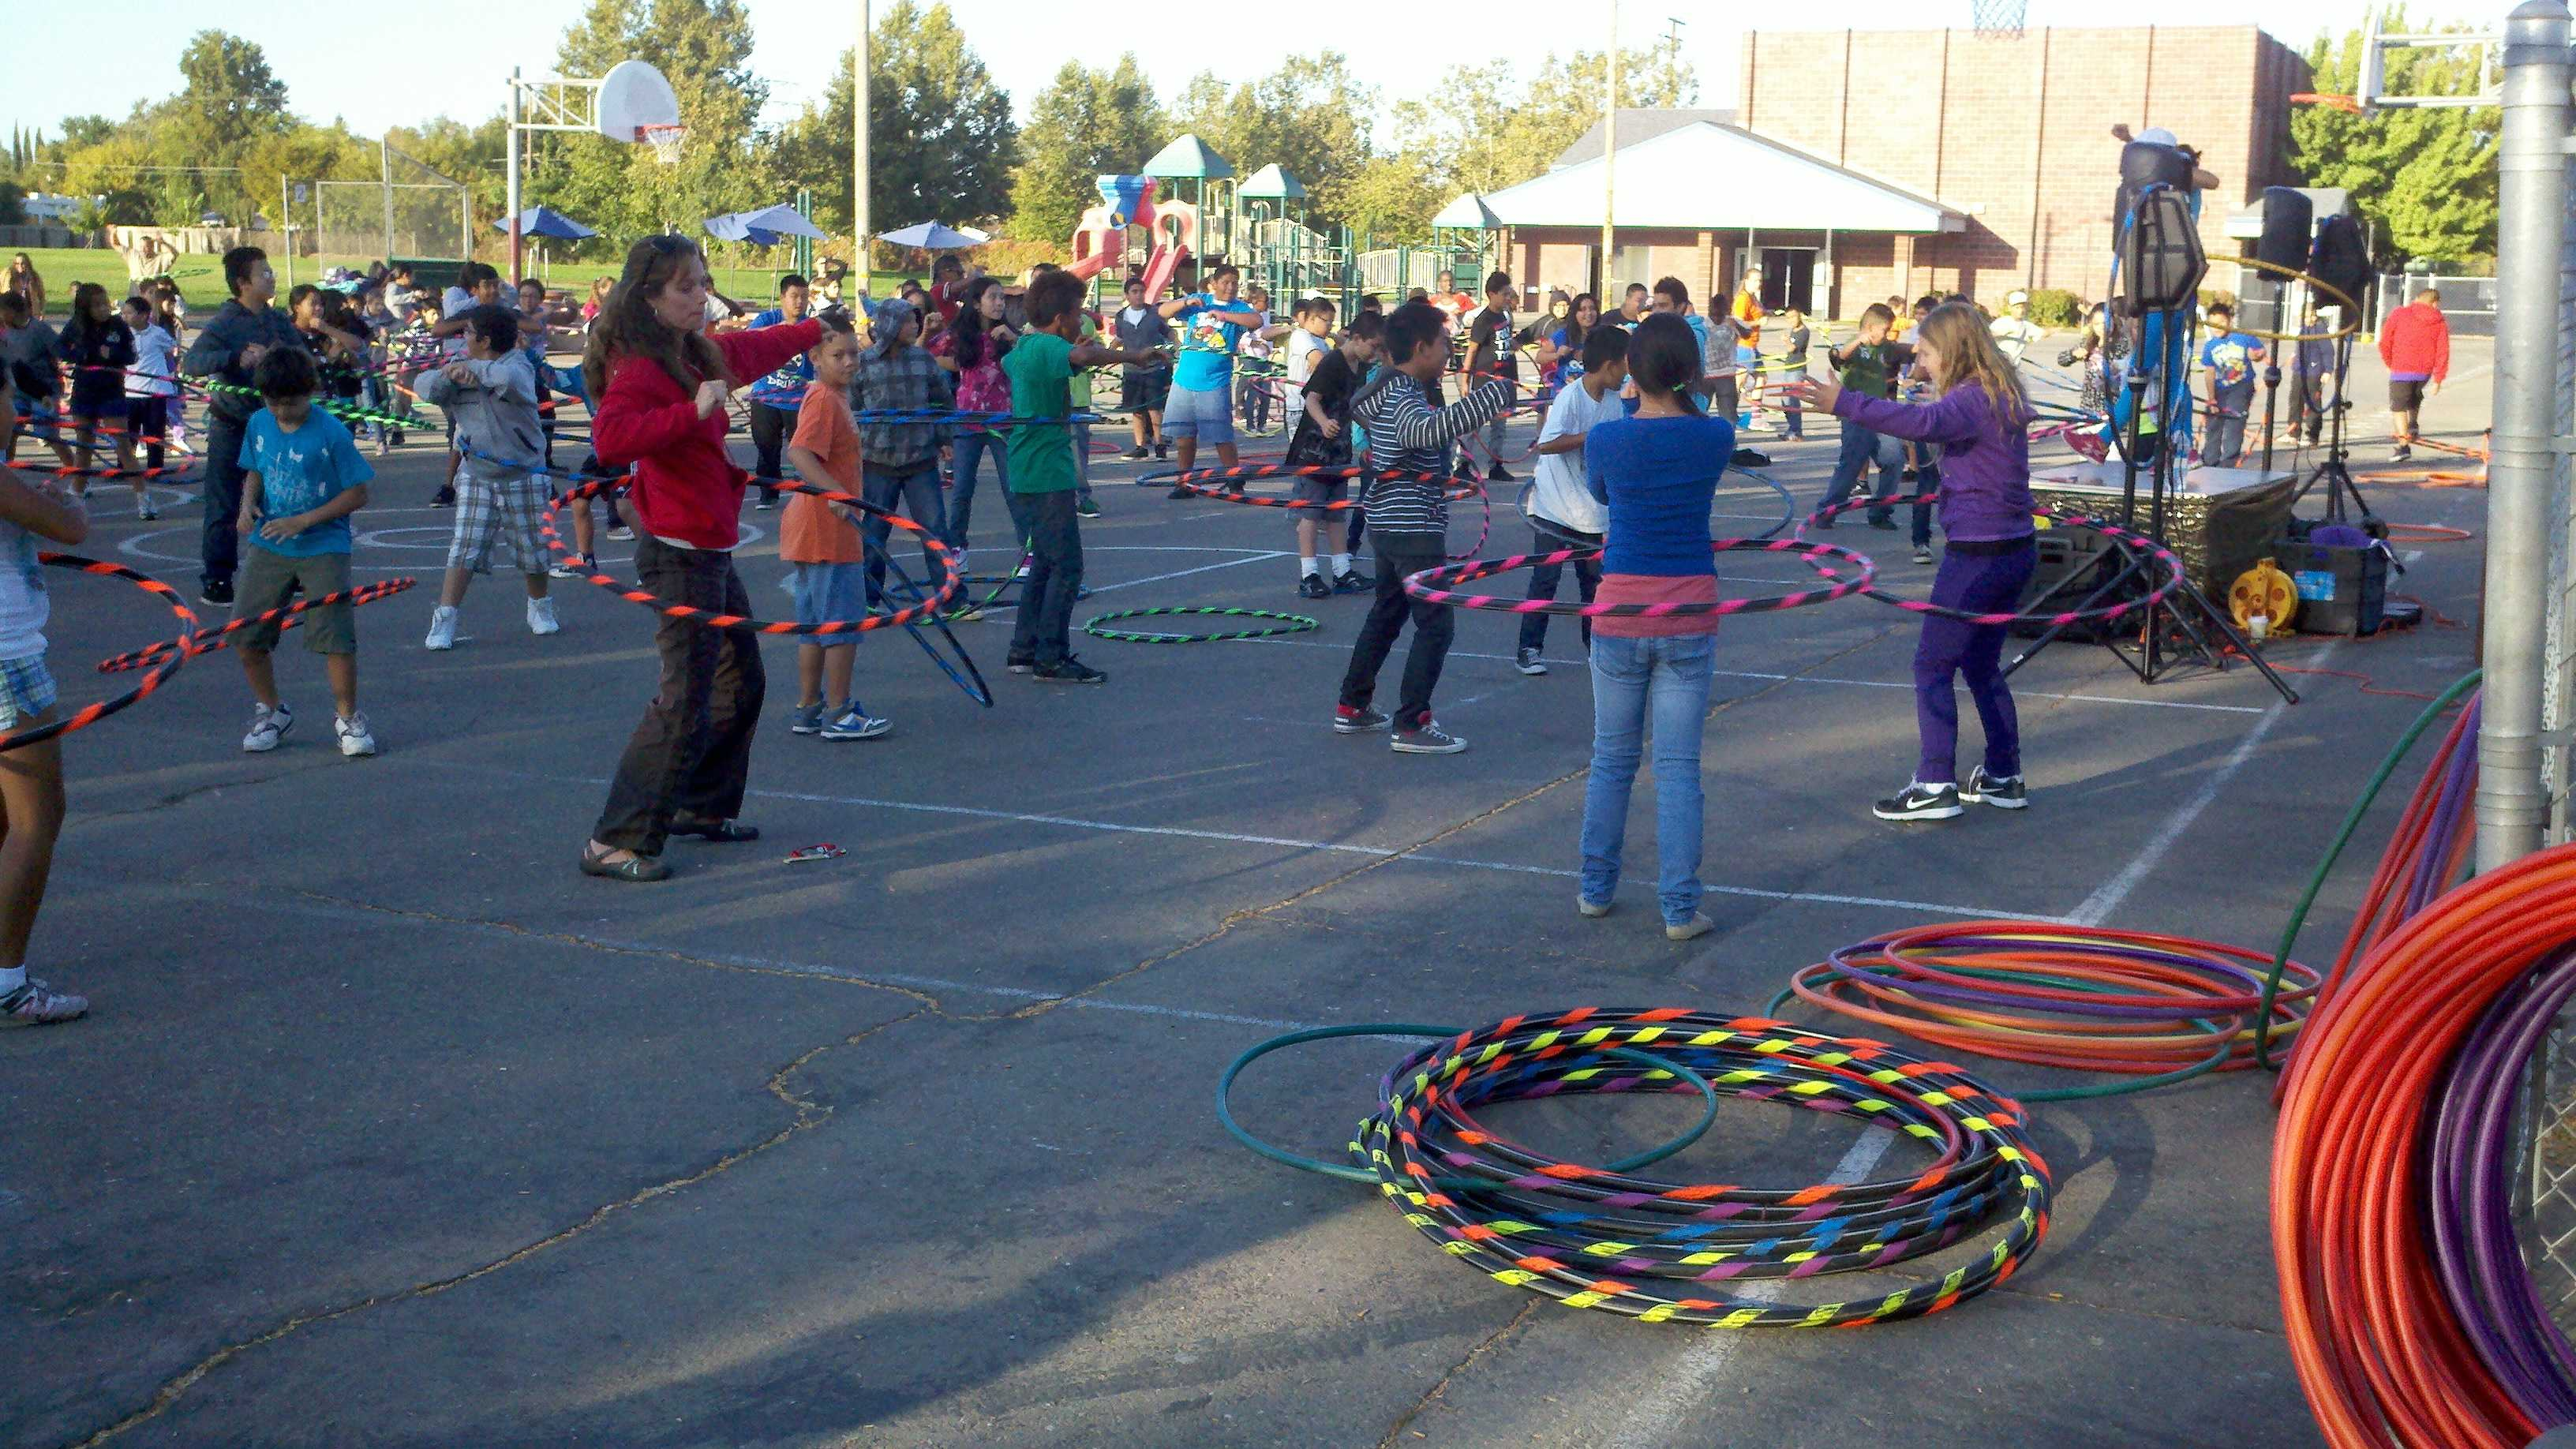 Hula hooping at Florin elementary